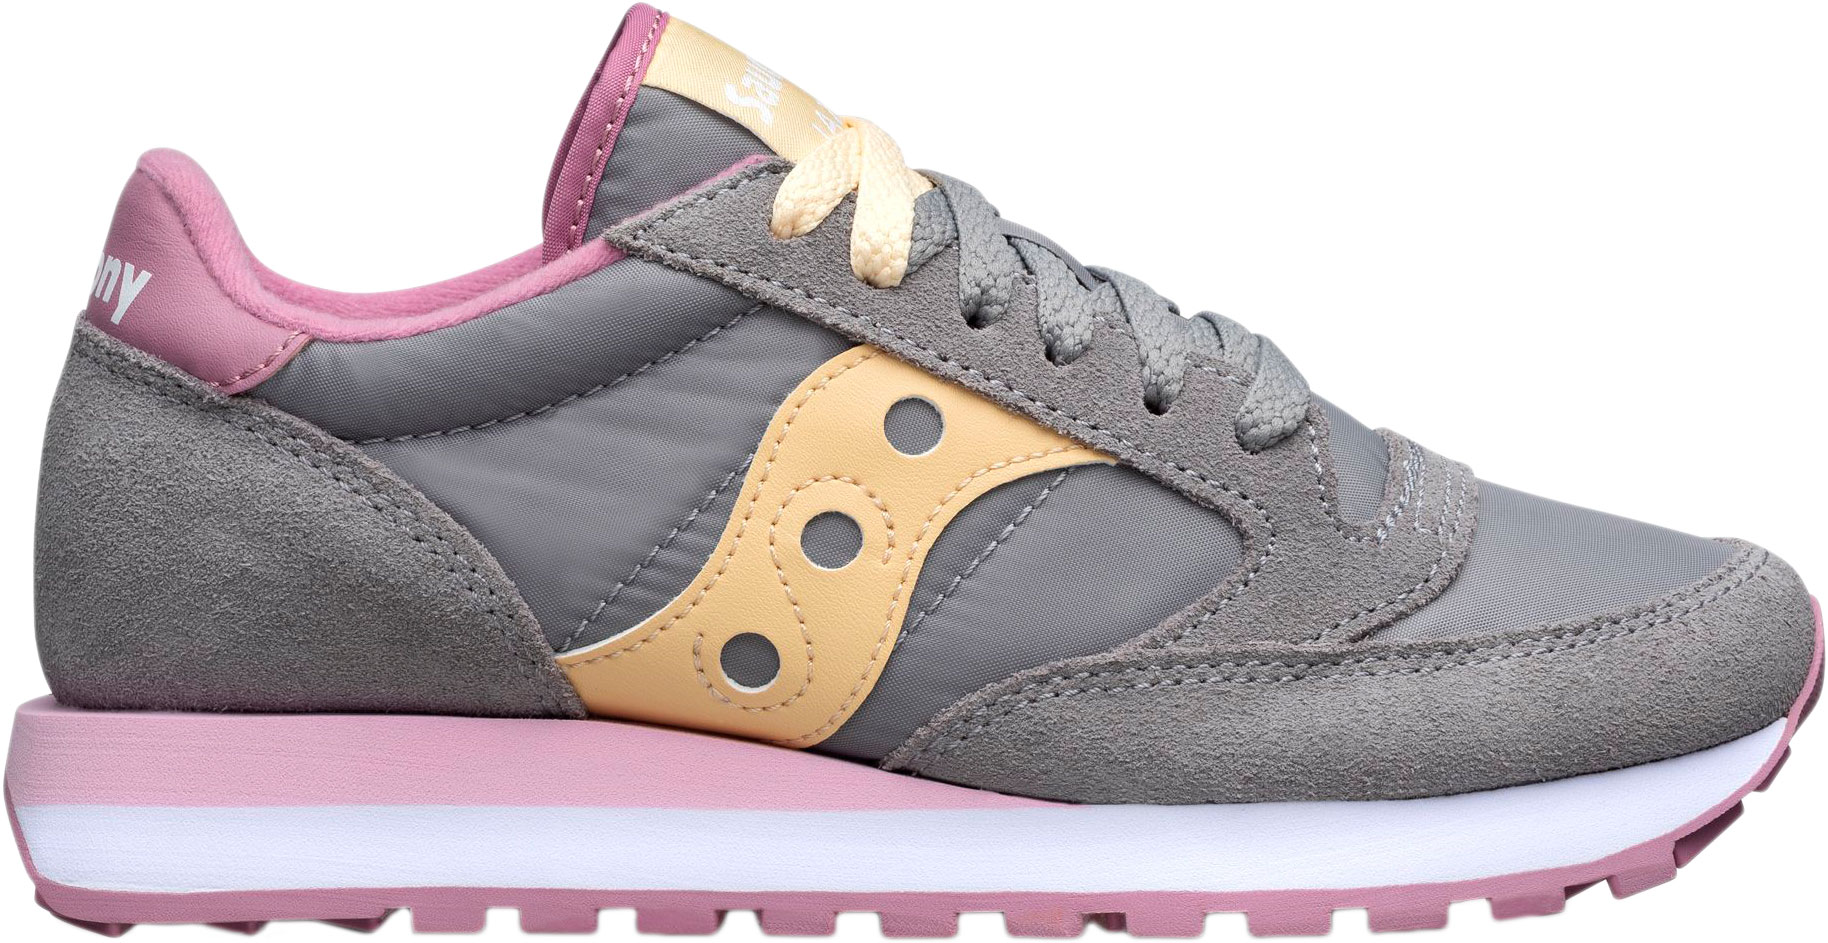 low priced 5126c 92ead Кроссовки Saucony 1044-515s 41 (9.5) 26 см Grey/Orchid/Wheat (44209794612)